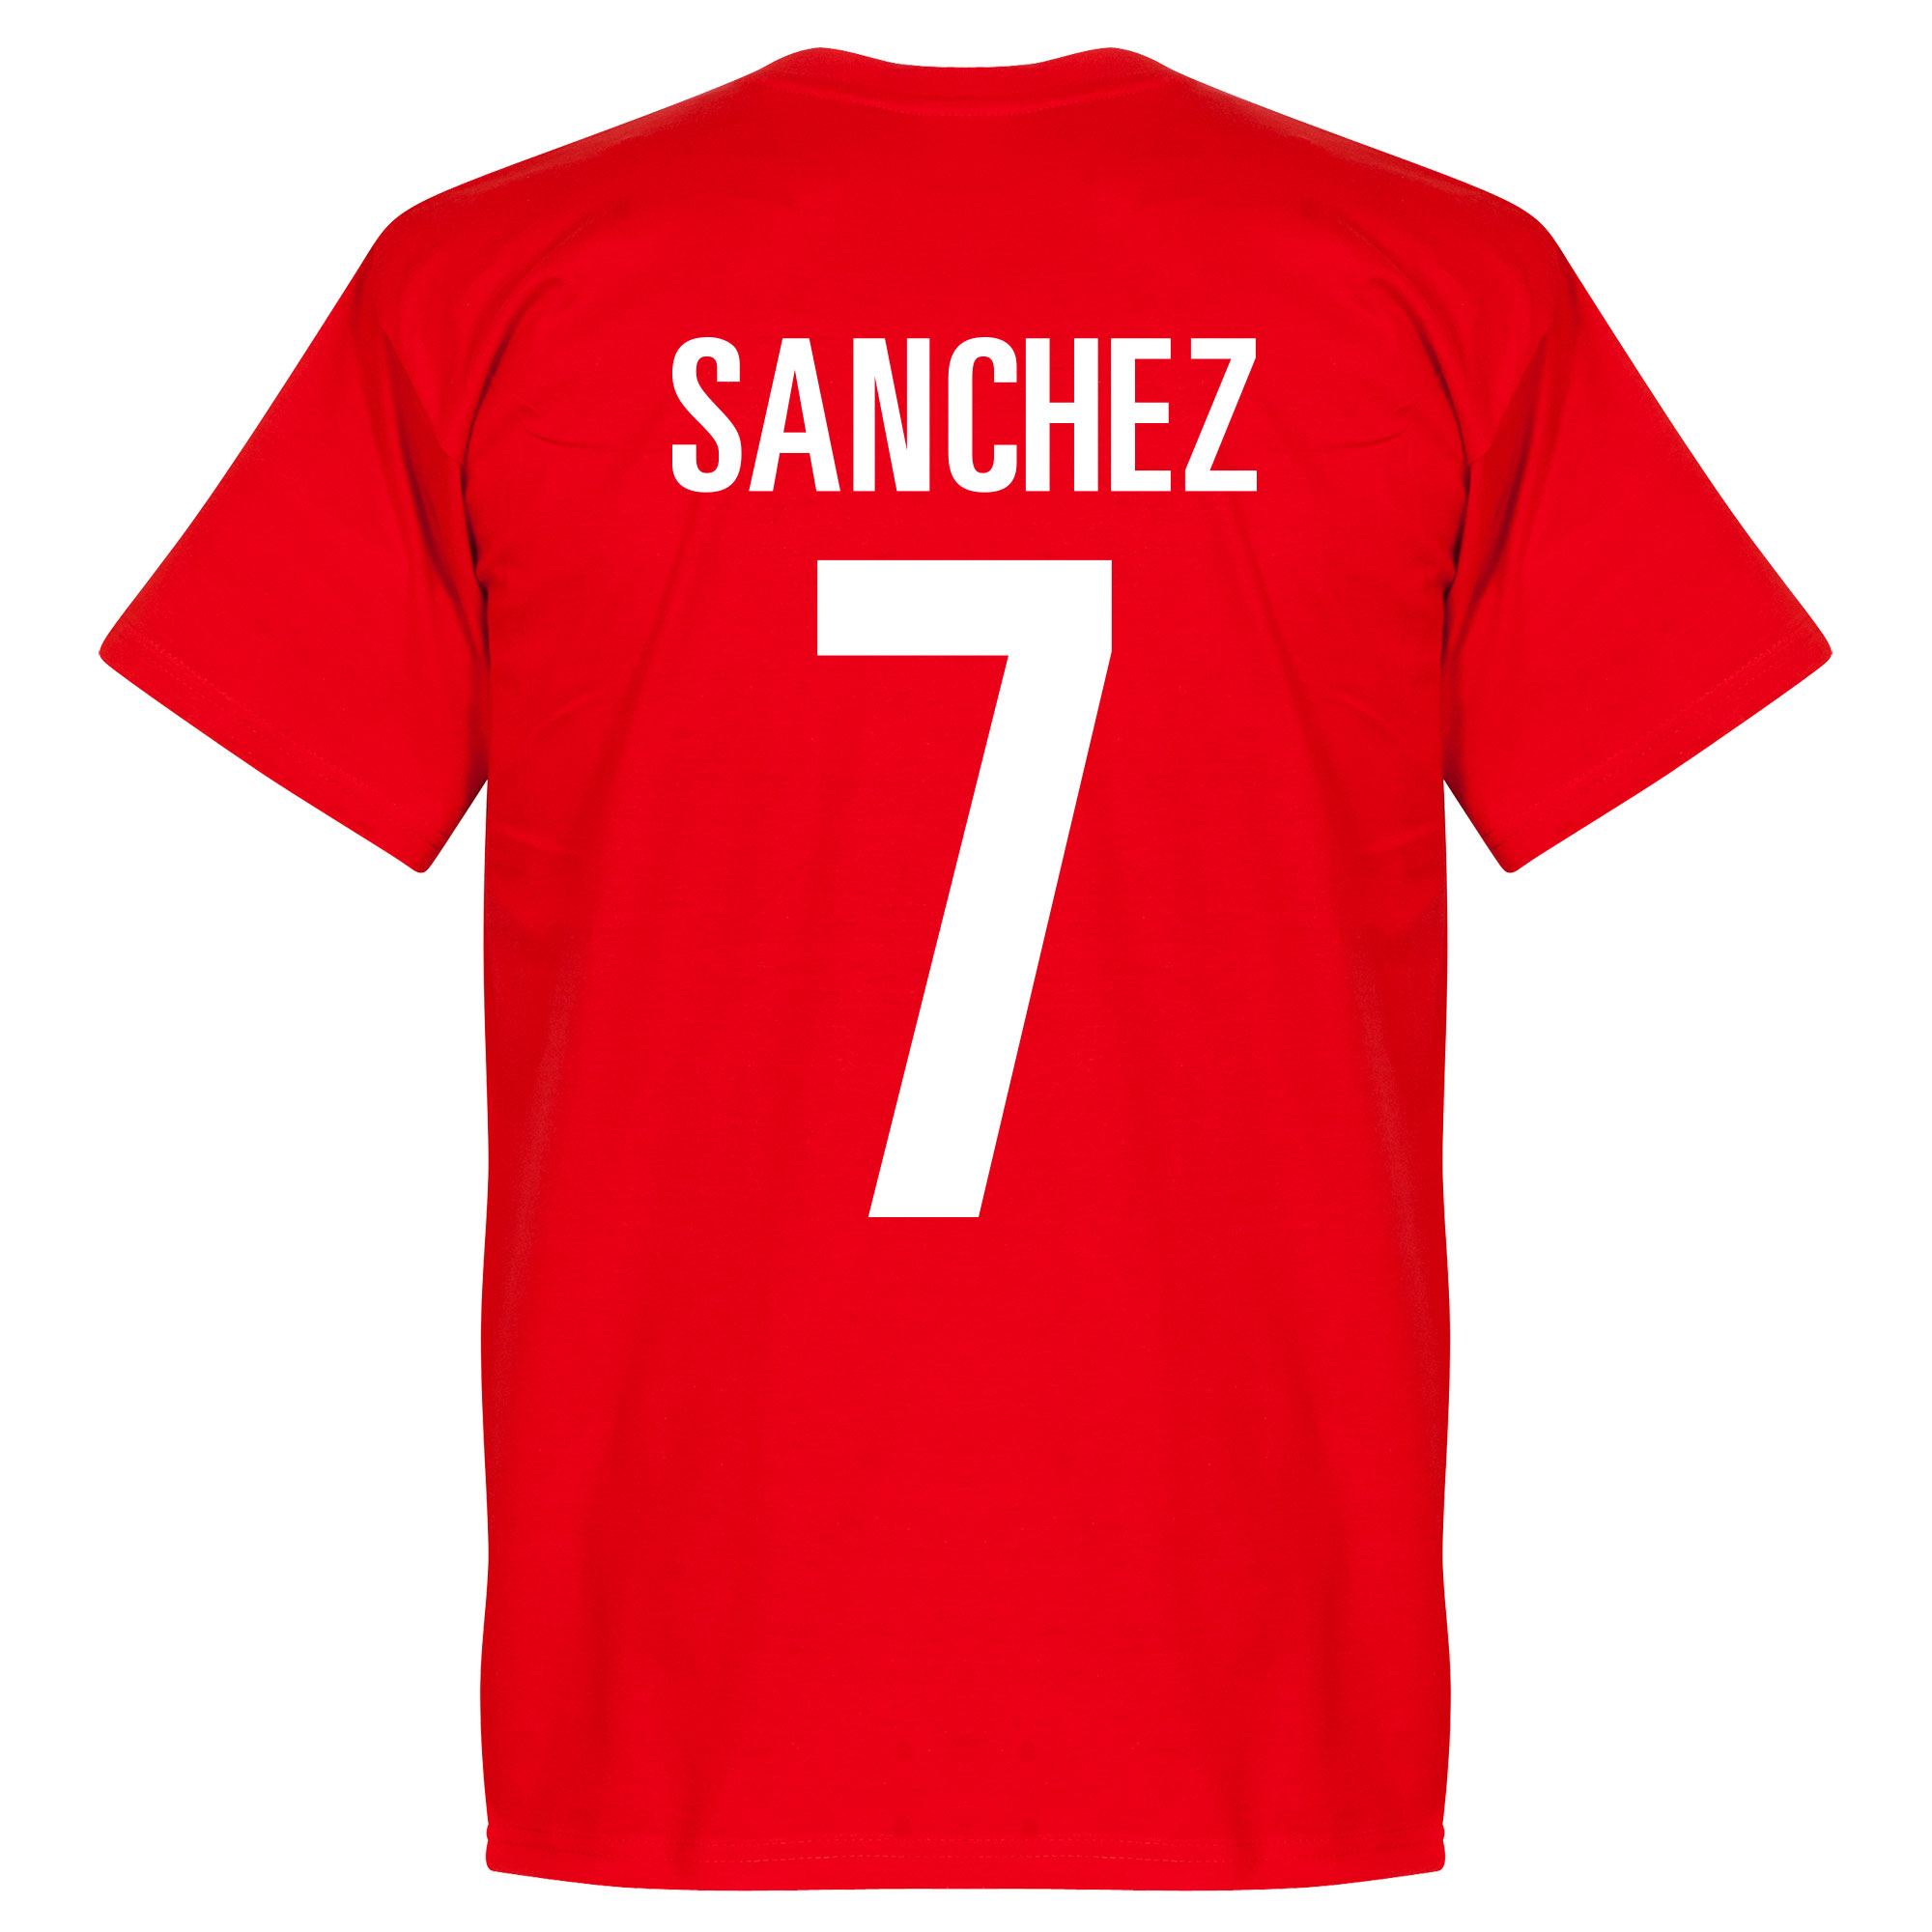 Chile Sanchez Tee - Red - M